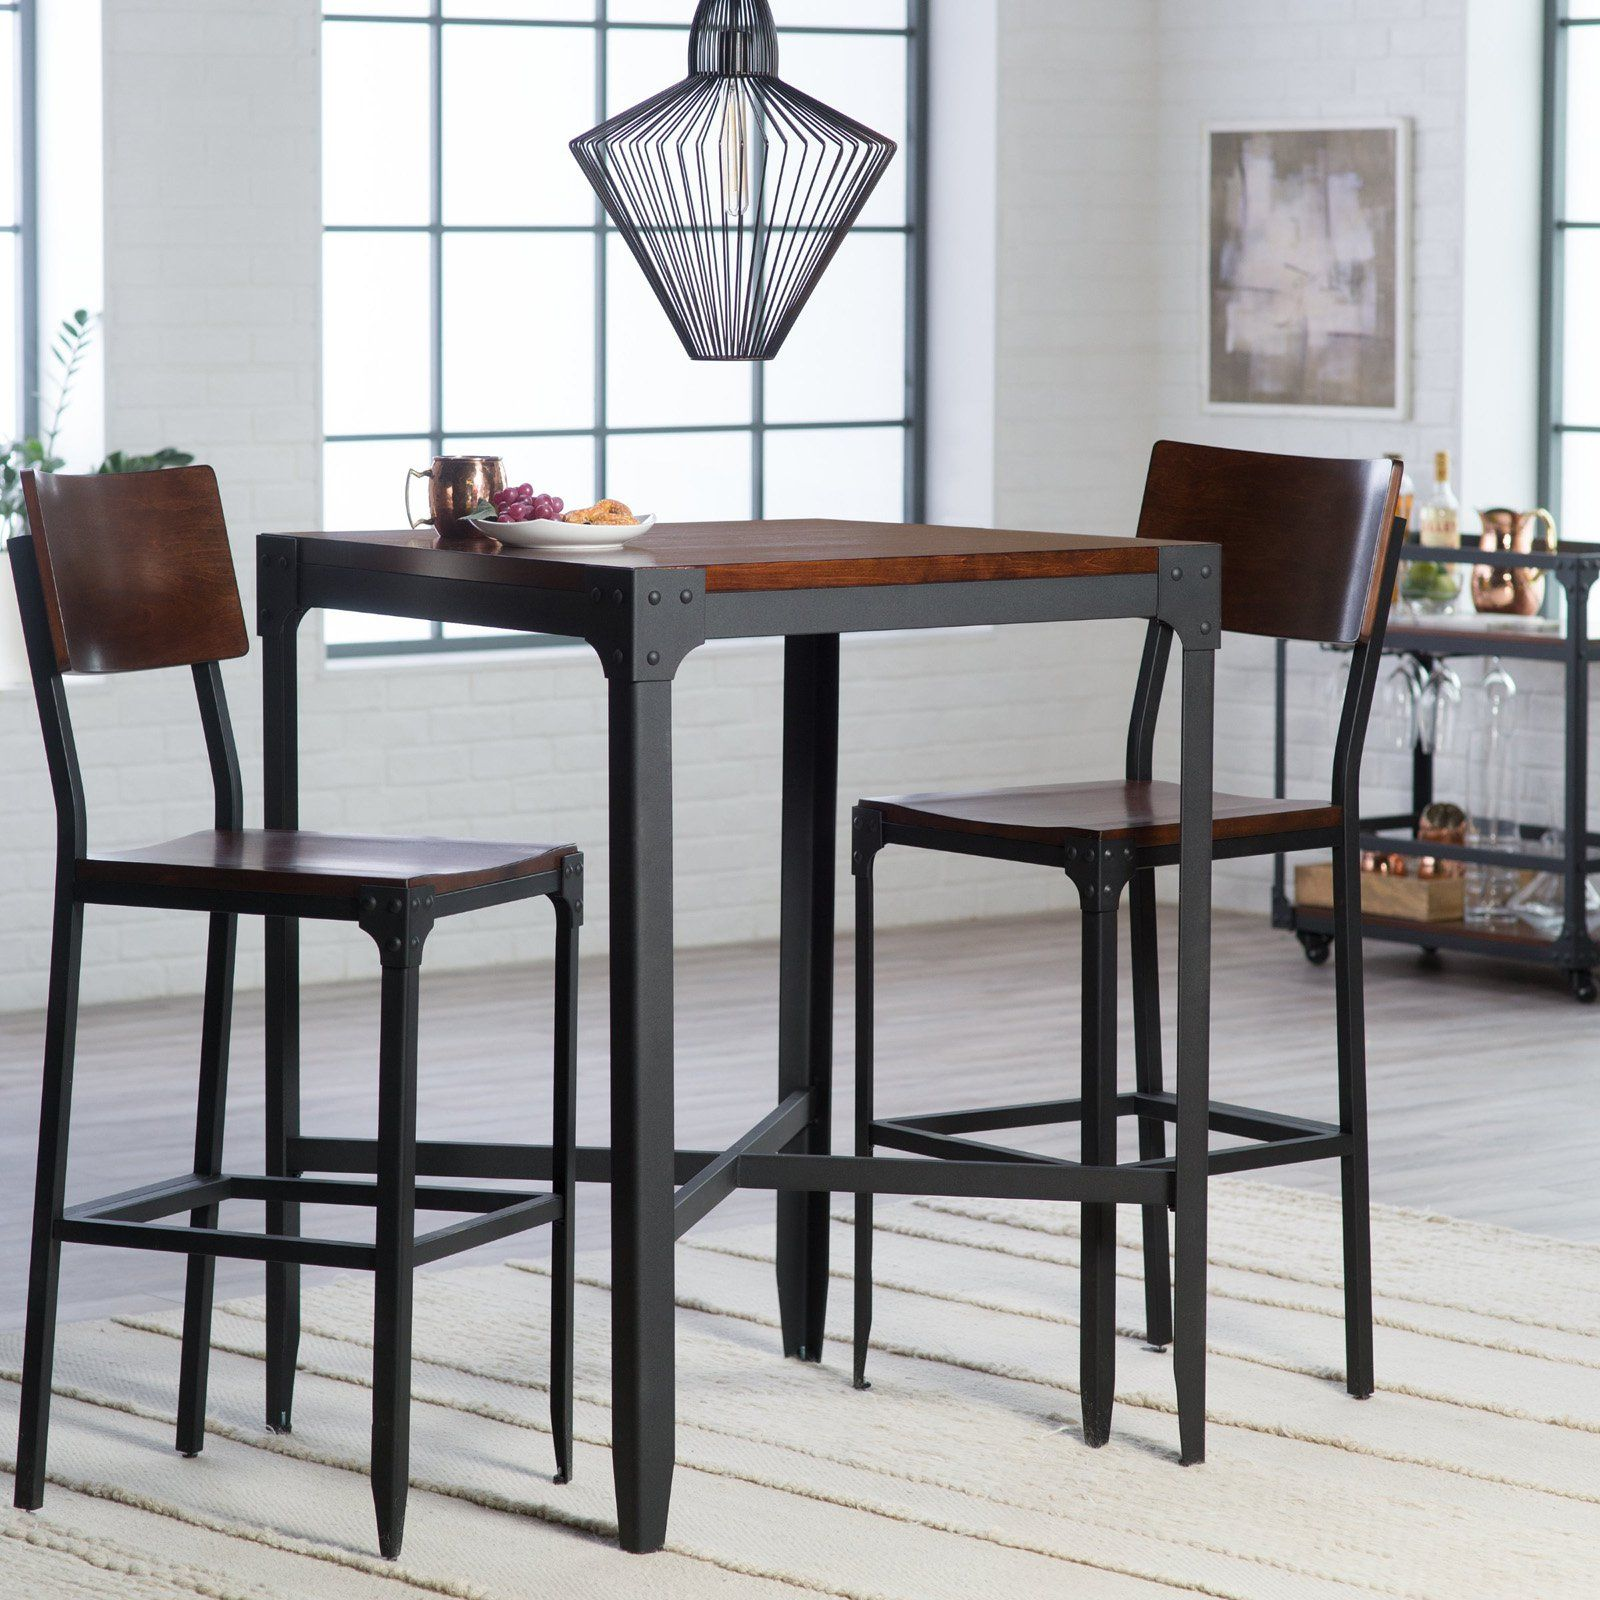 Small Pub Table And Chairs Metal Folding Lowes Belham Living Trenton 3 Piece Set In 2019 Products Redu120